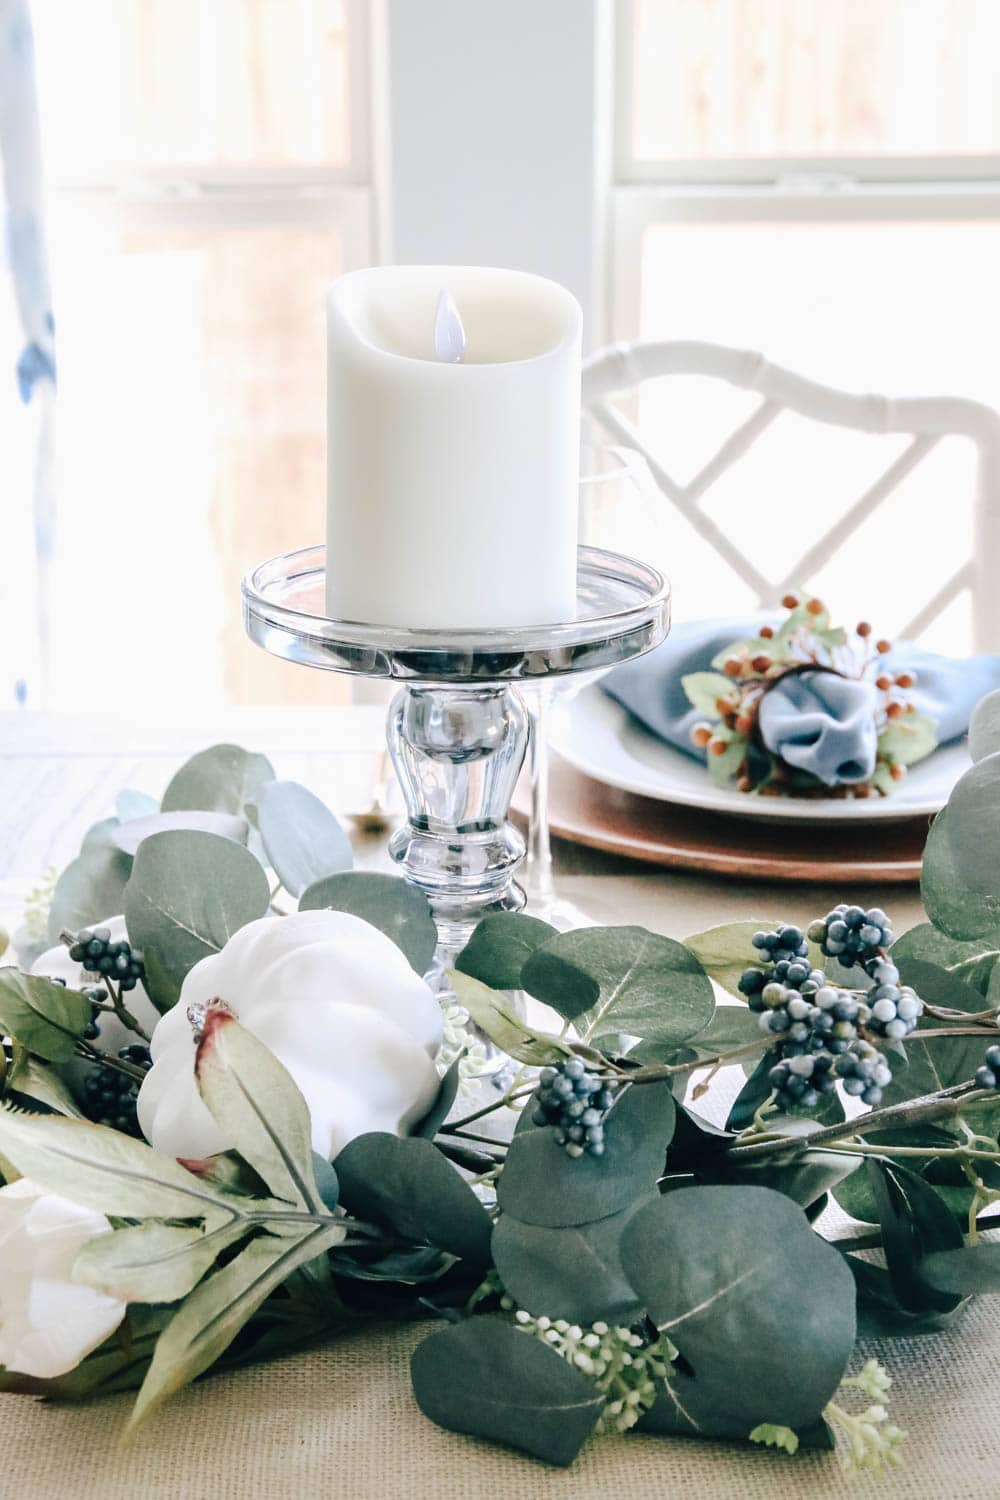 The prettiest smokey grey color on these candles makes them neutral to use any time of year. #ABlissfulNest #fall #thanksgiving #falldecor